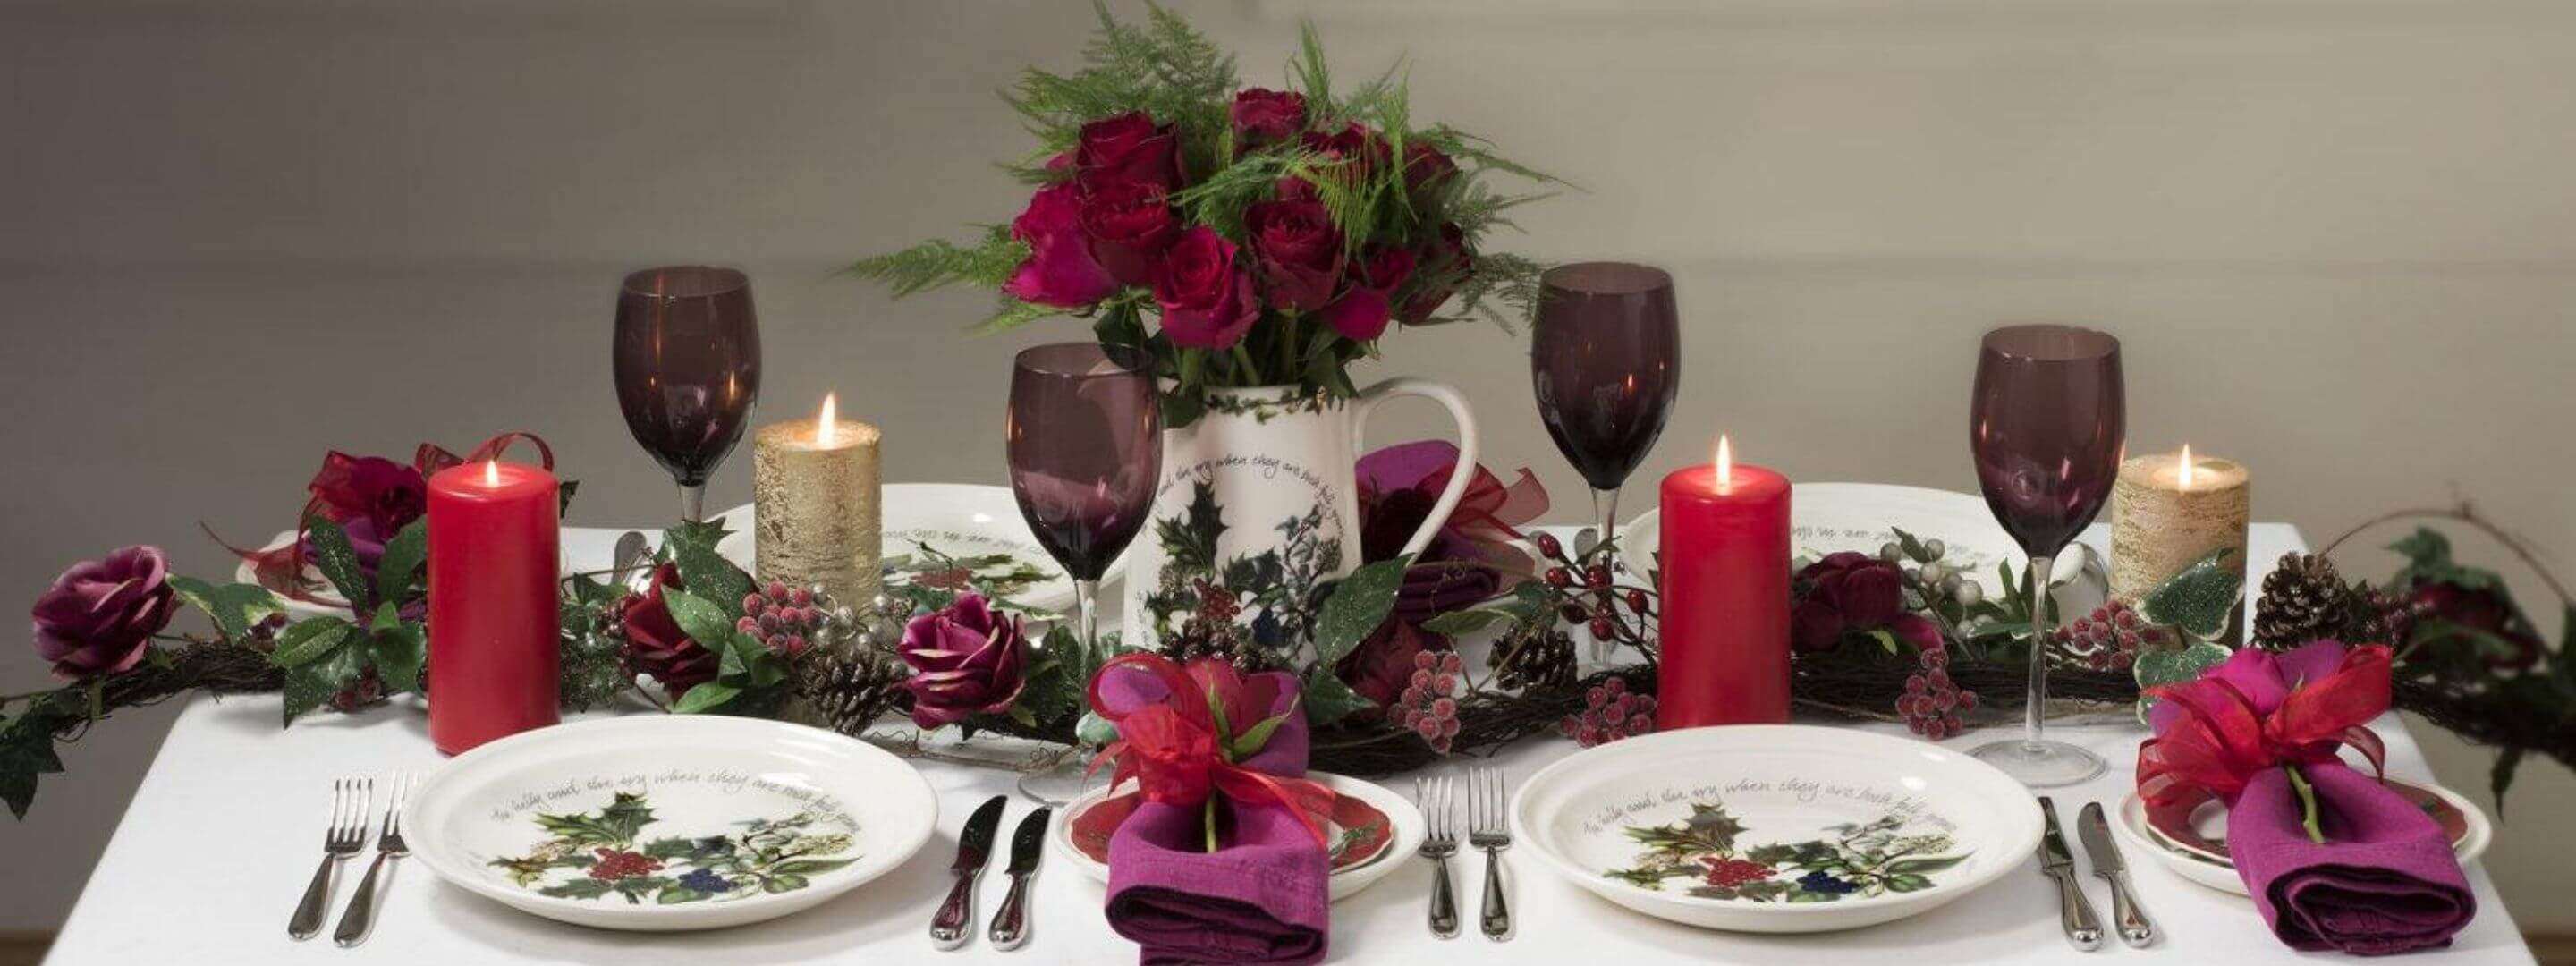 Portmeirion Christmas Dining Collections